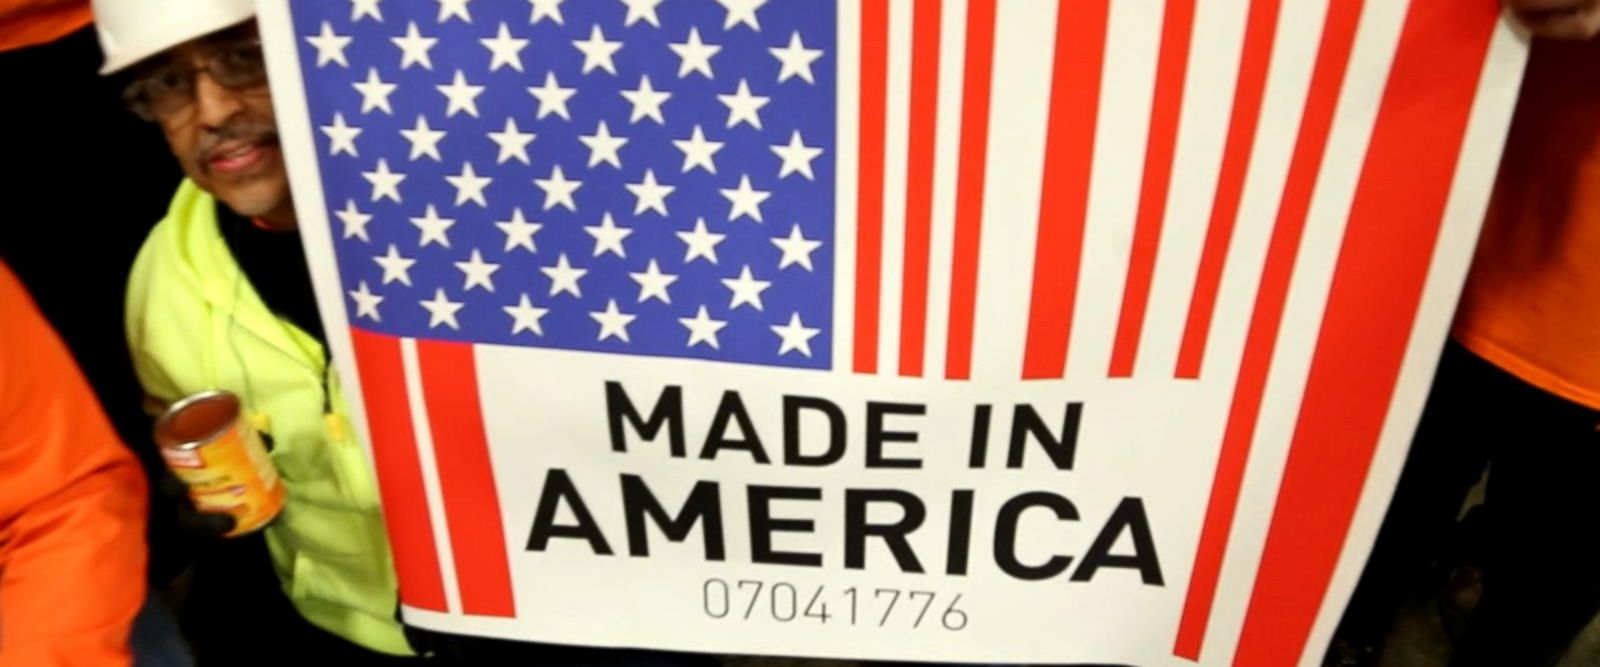 VIDEO: Made in America: Passing the bread